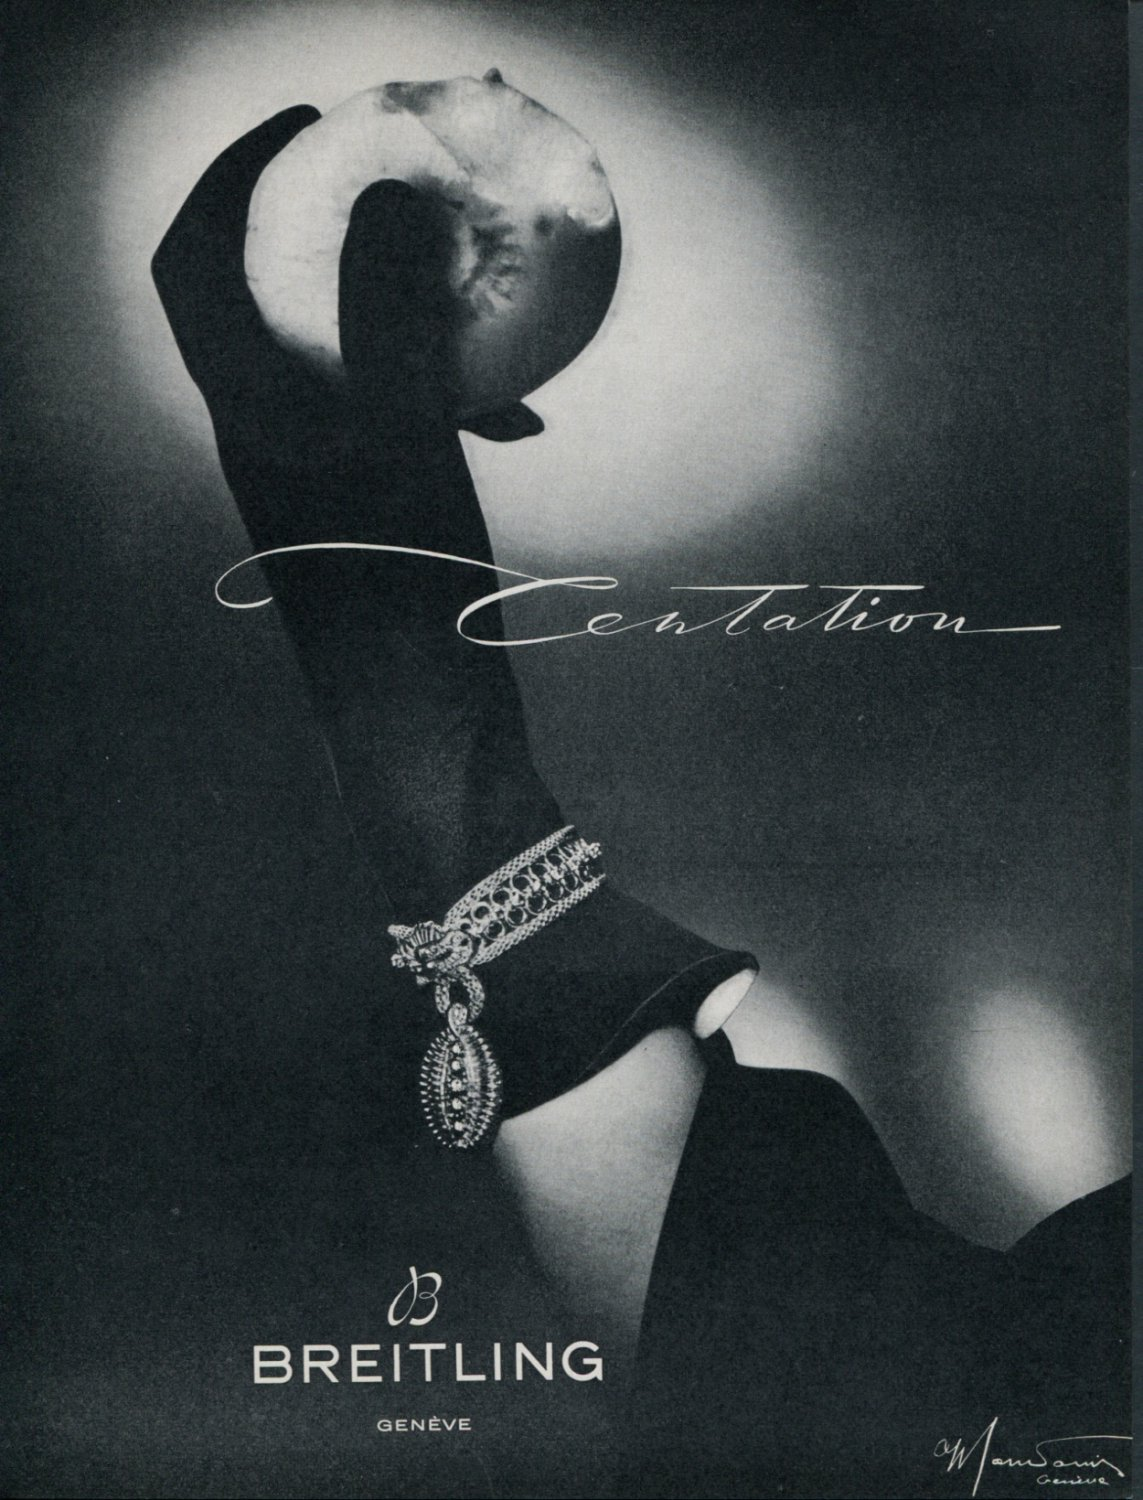 1953 Breitling Watch Company Centation Advert 1953 Swiss Ad Suisse Advert Horlogerie Switzerland